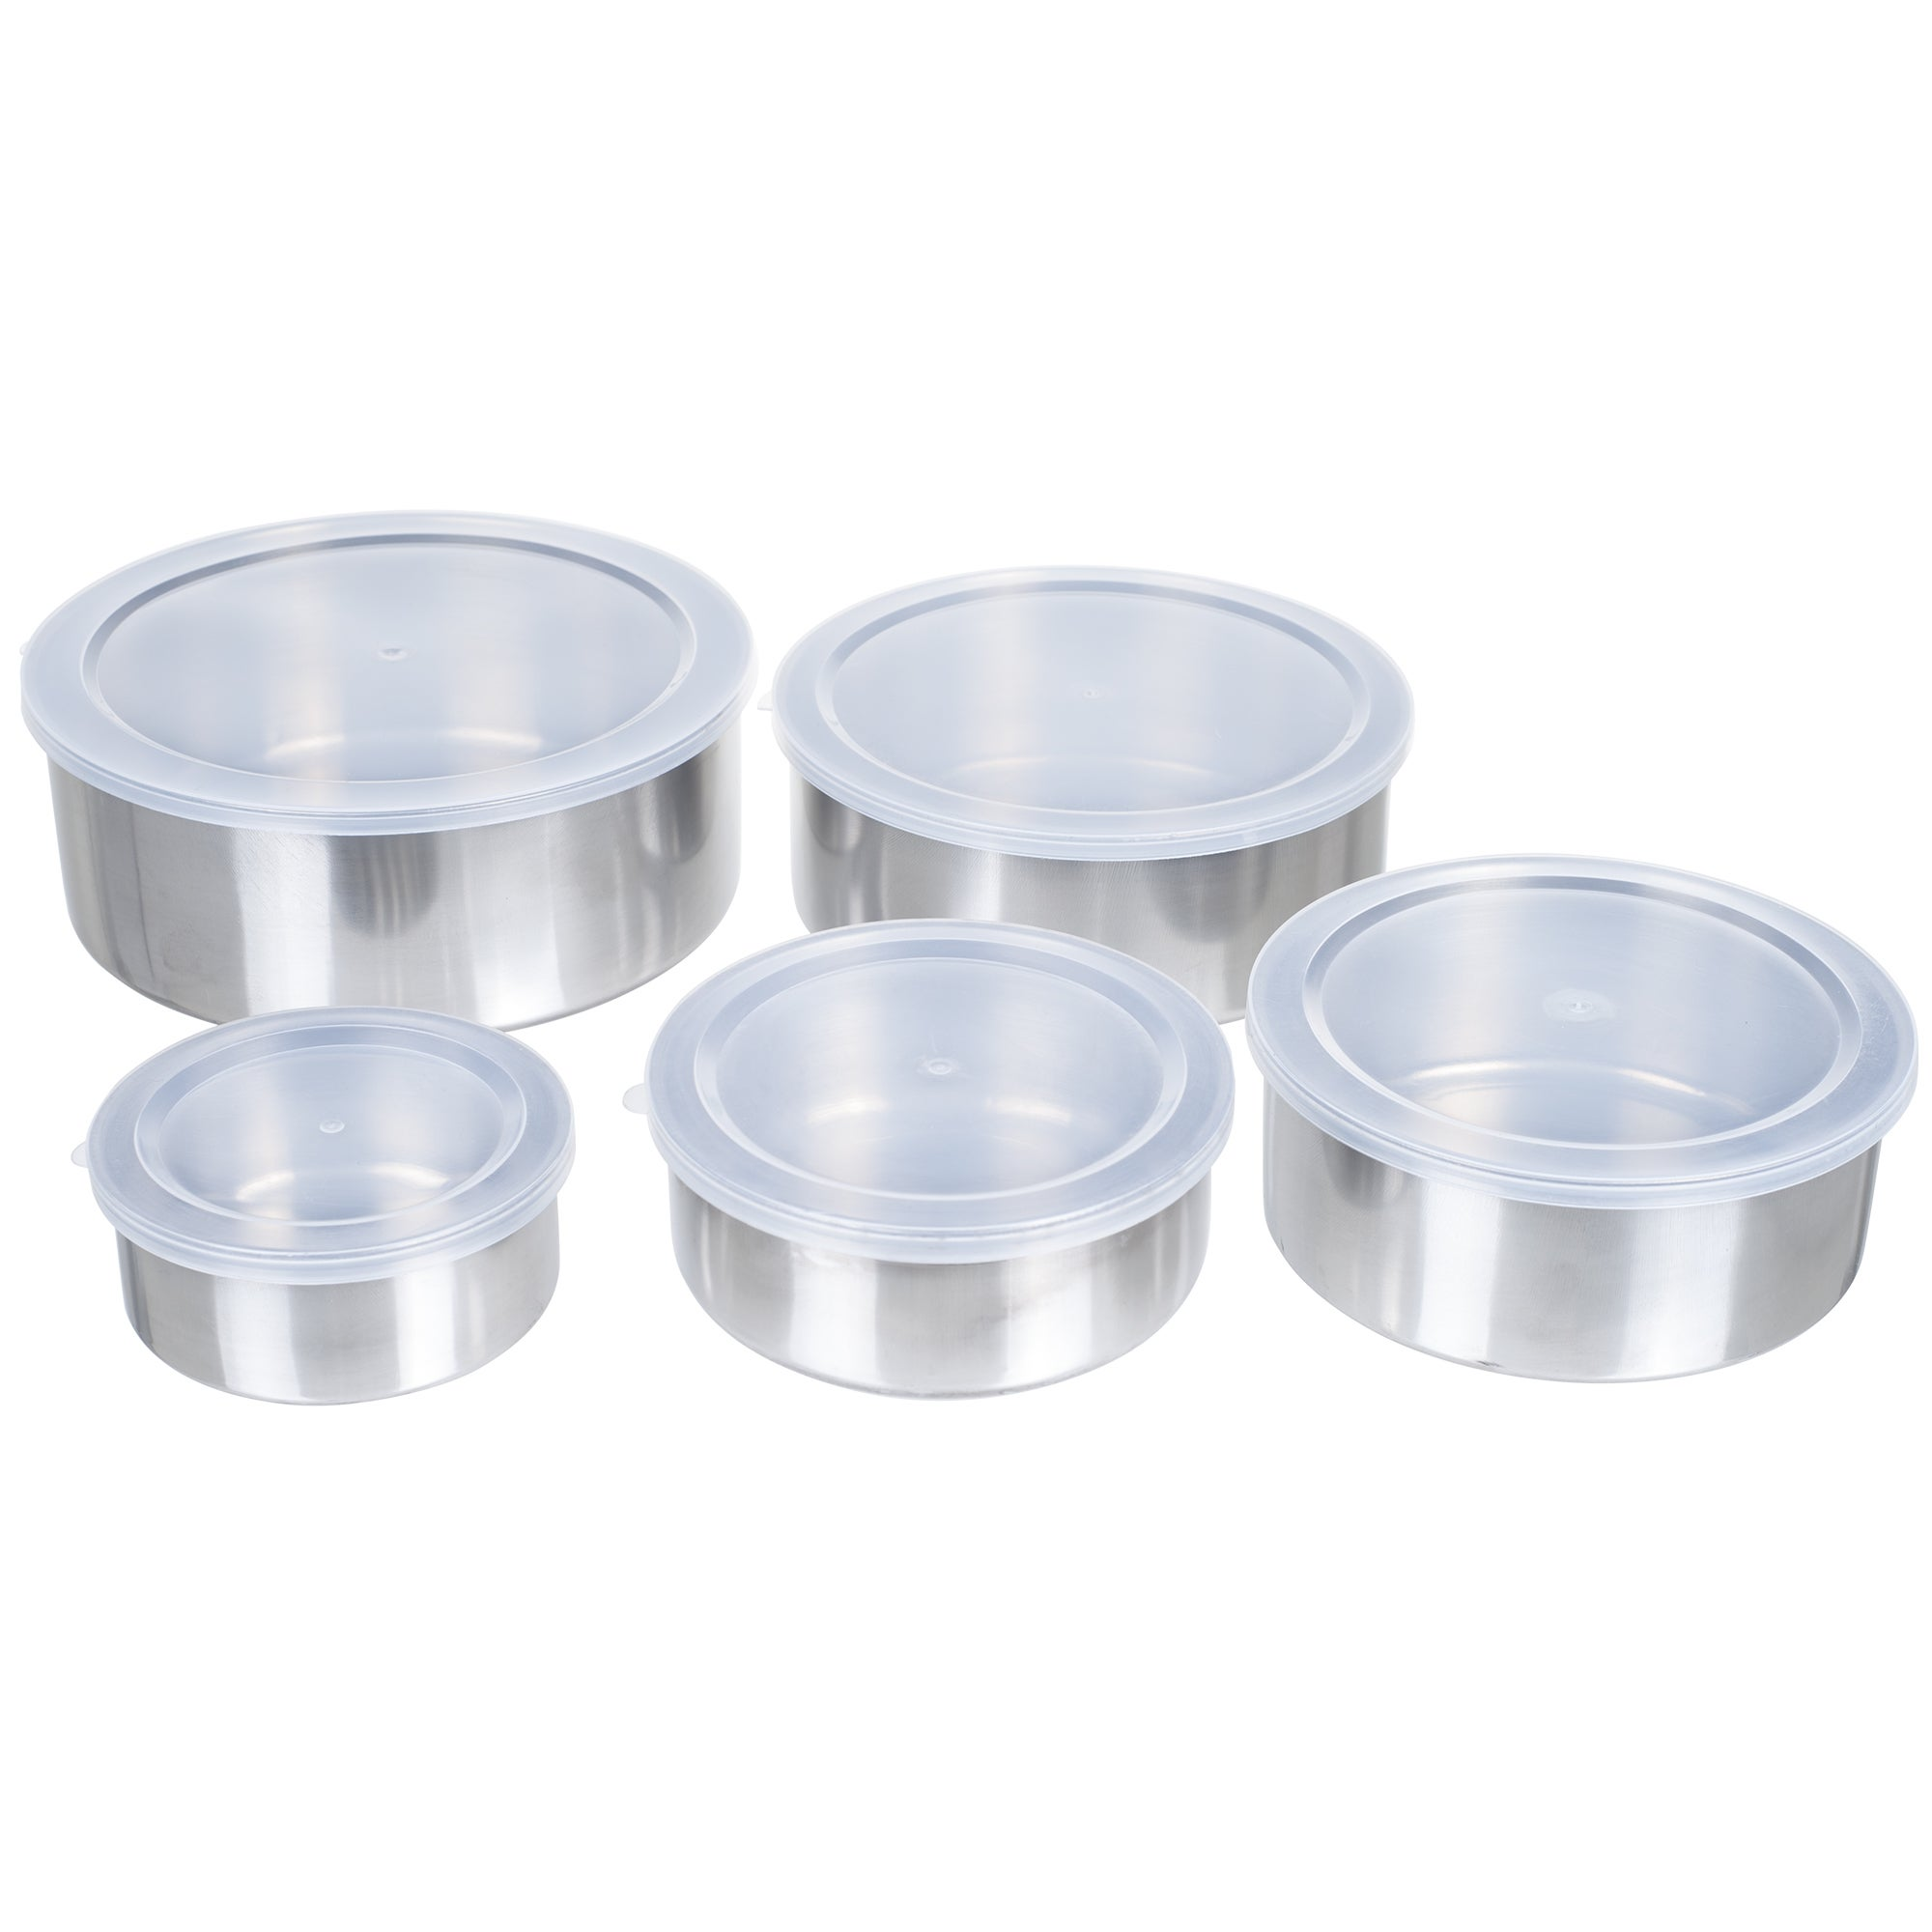 Chef Buddy 5 Piece Stainless Steel Bowl Set with Lids (5 ...